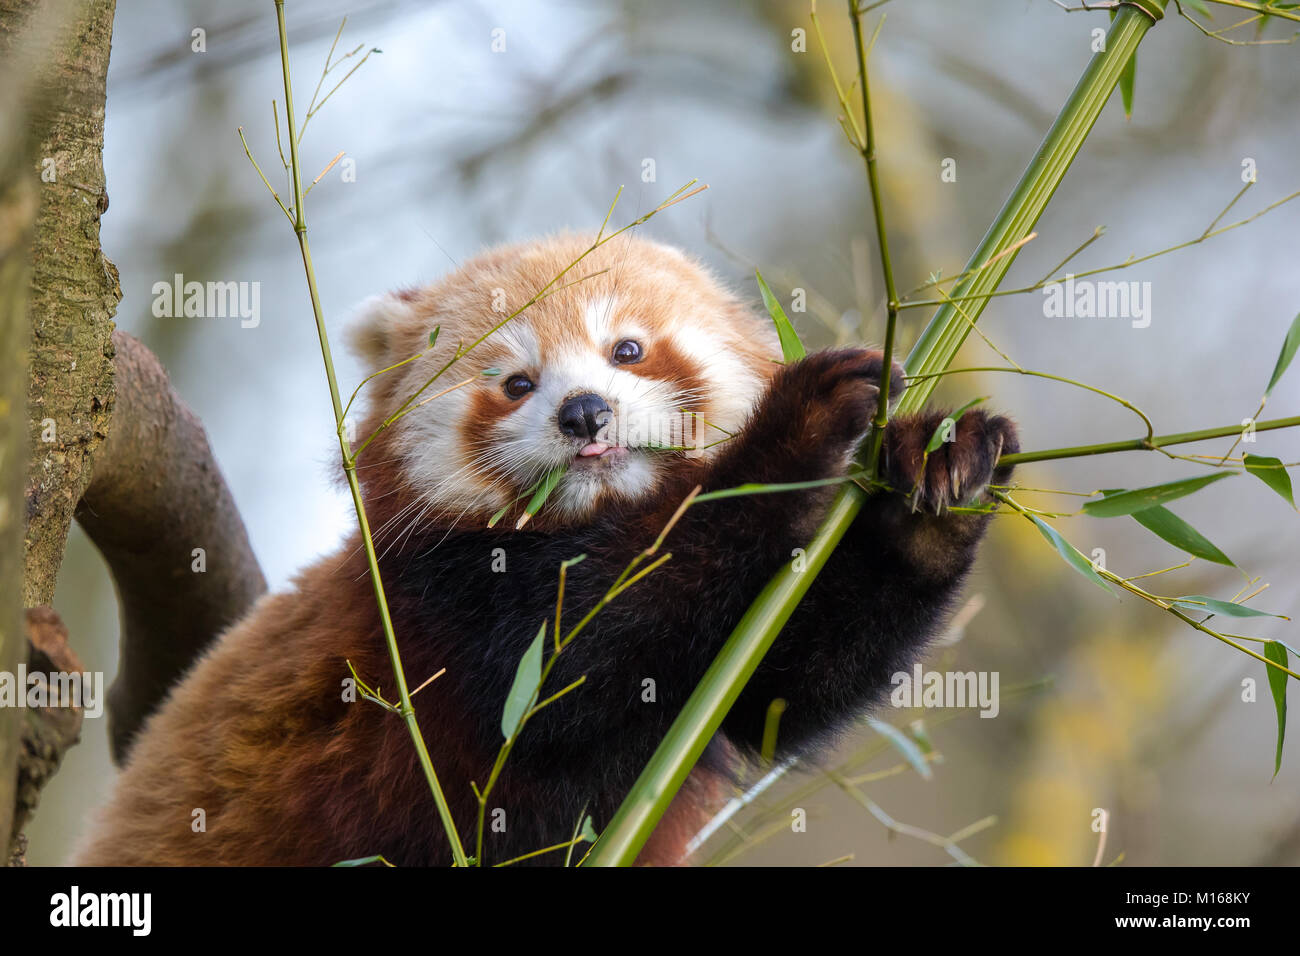 Detailed close up of cute young red panda (Ailurus fulgens) perched high in tree nibbling foliage. Holding on with - Stock Image